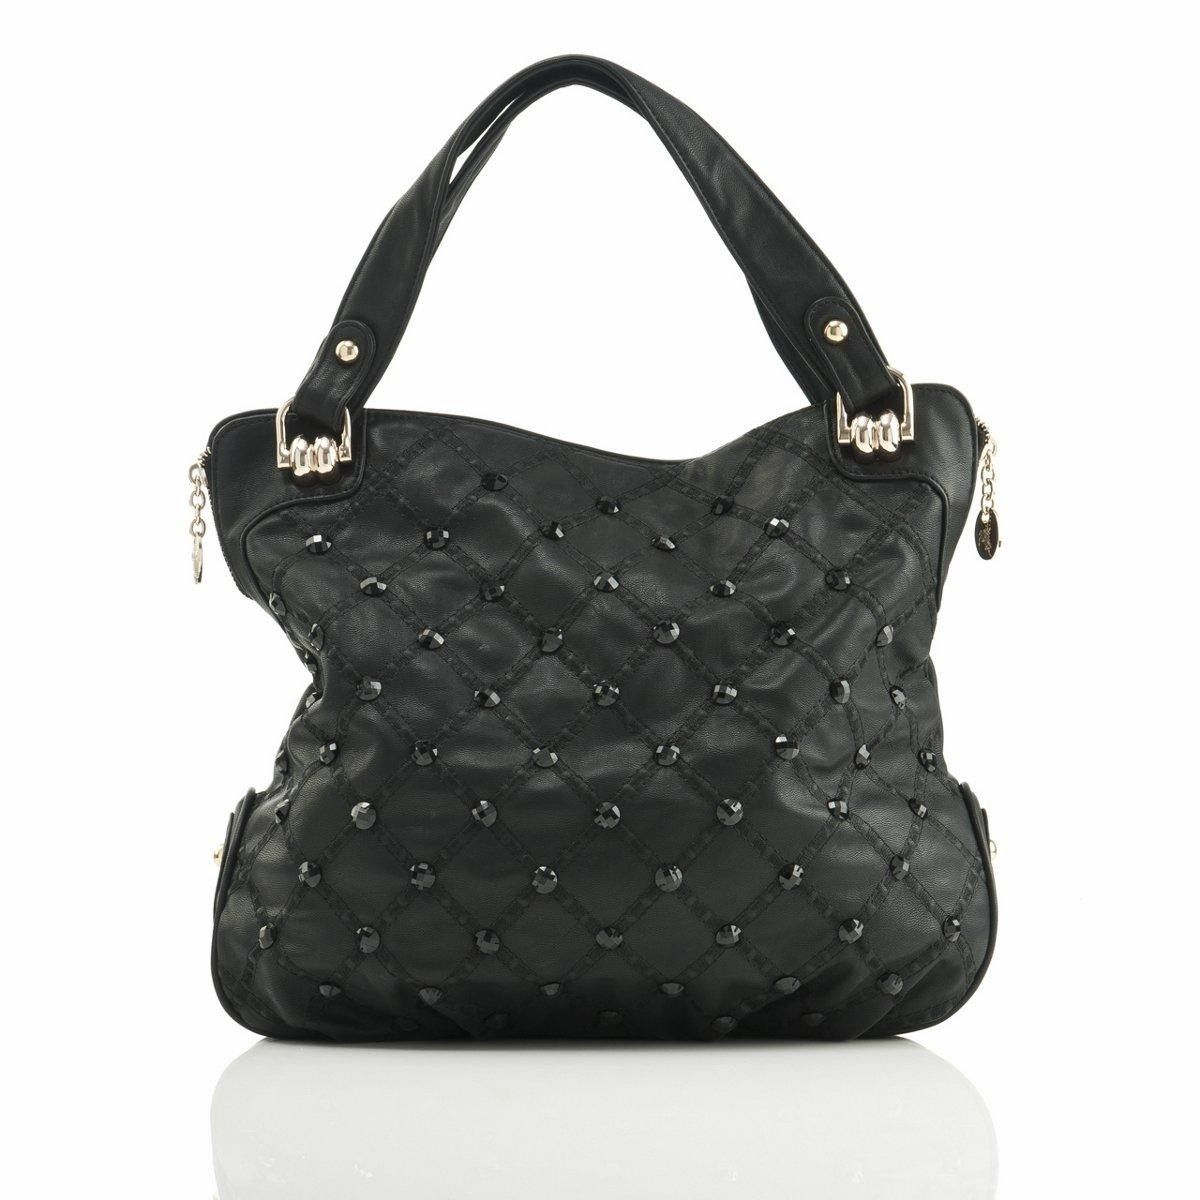 89.99 Polo Villae Black Bead-Studded Handbag from The Shopping Channel 3924750939